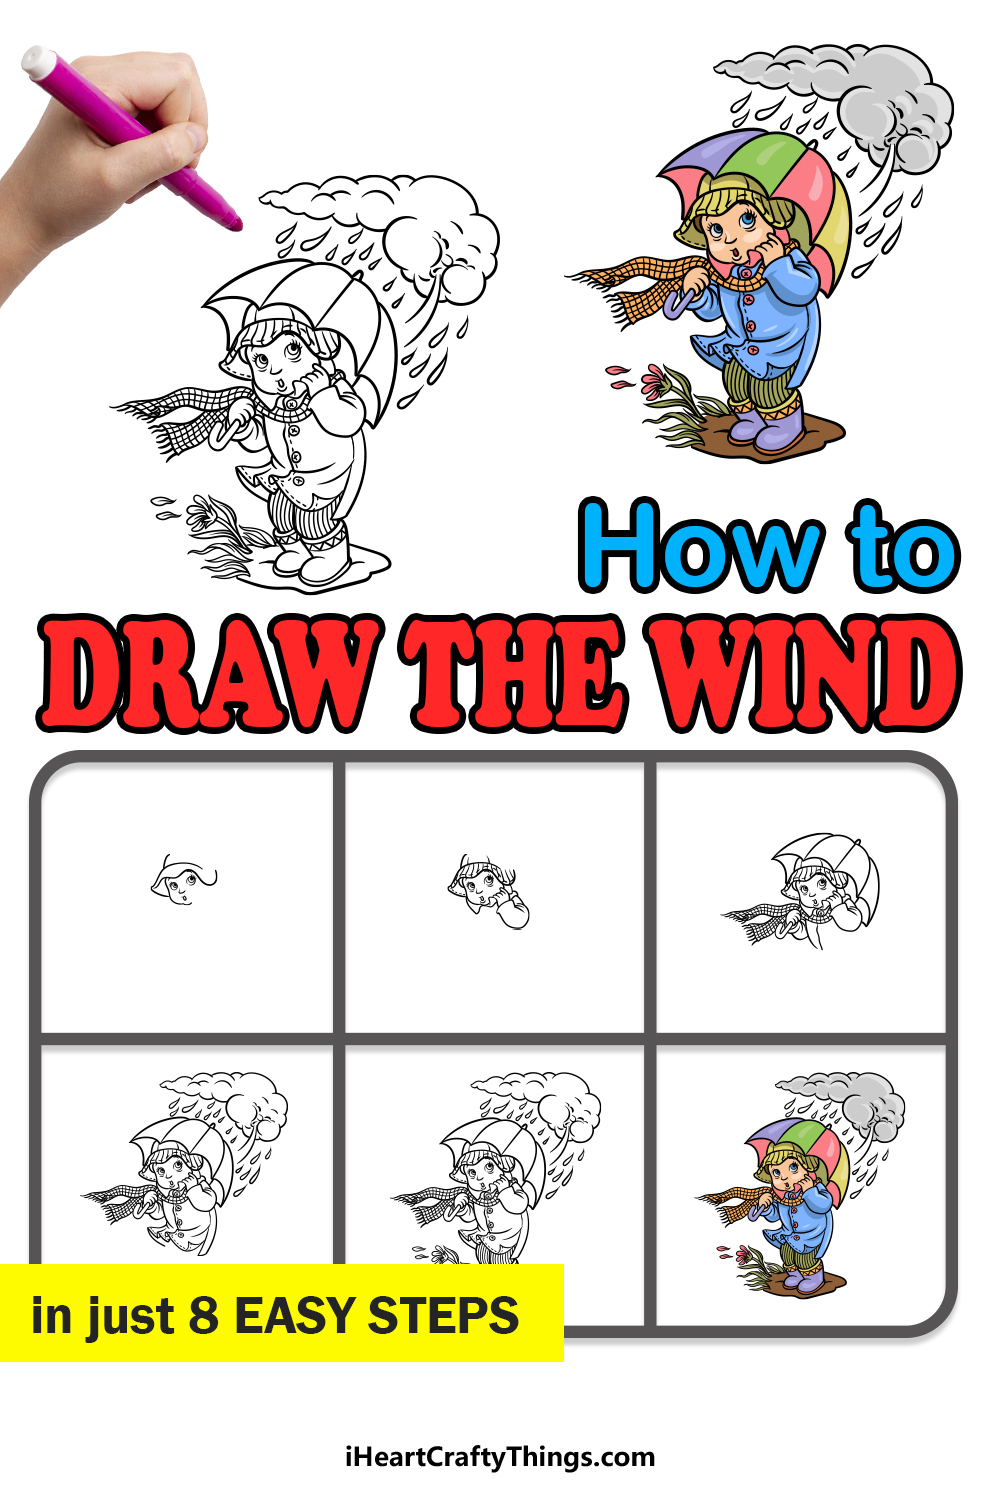 how to draw the wind in 8 easy steps